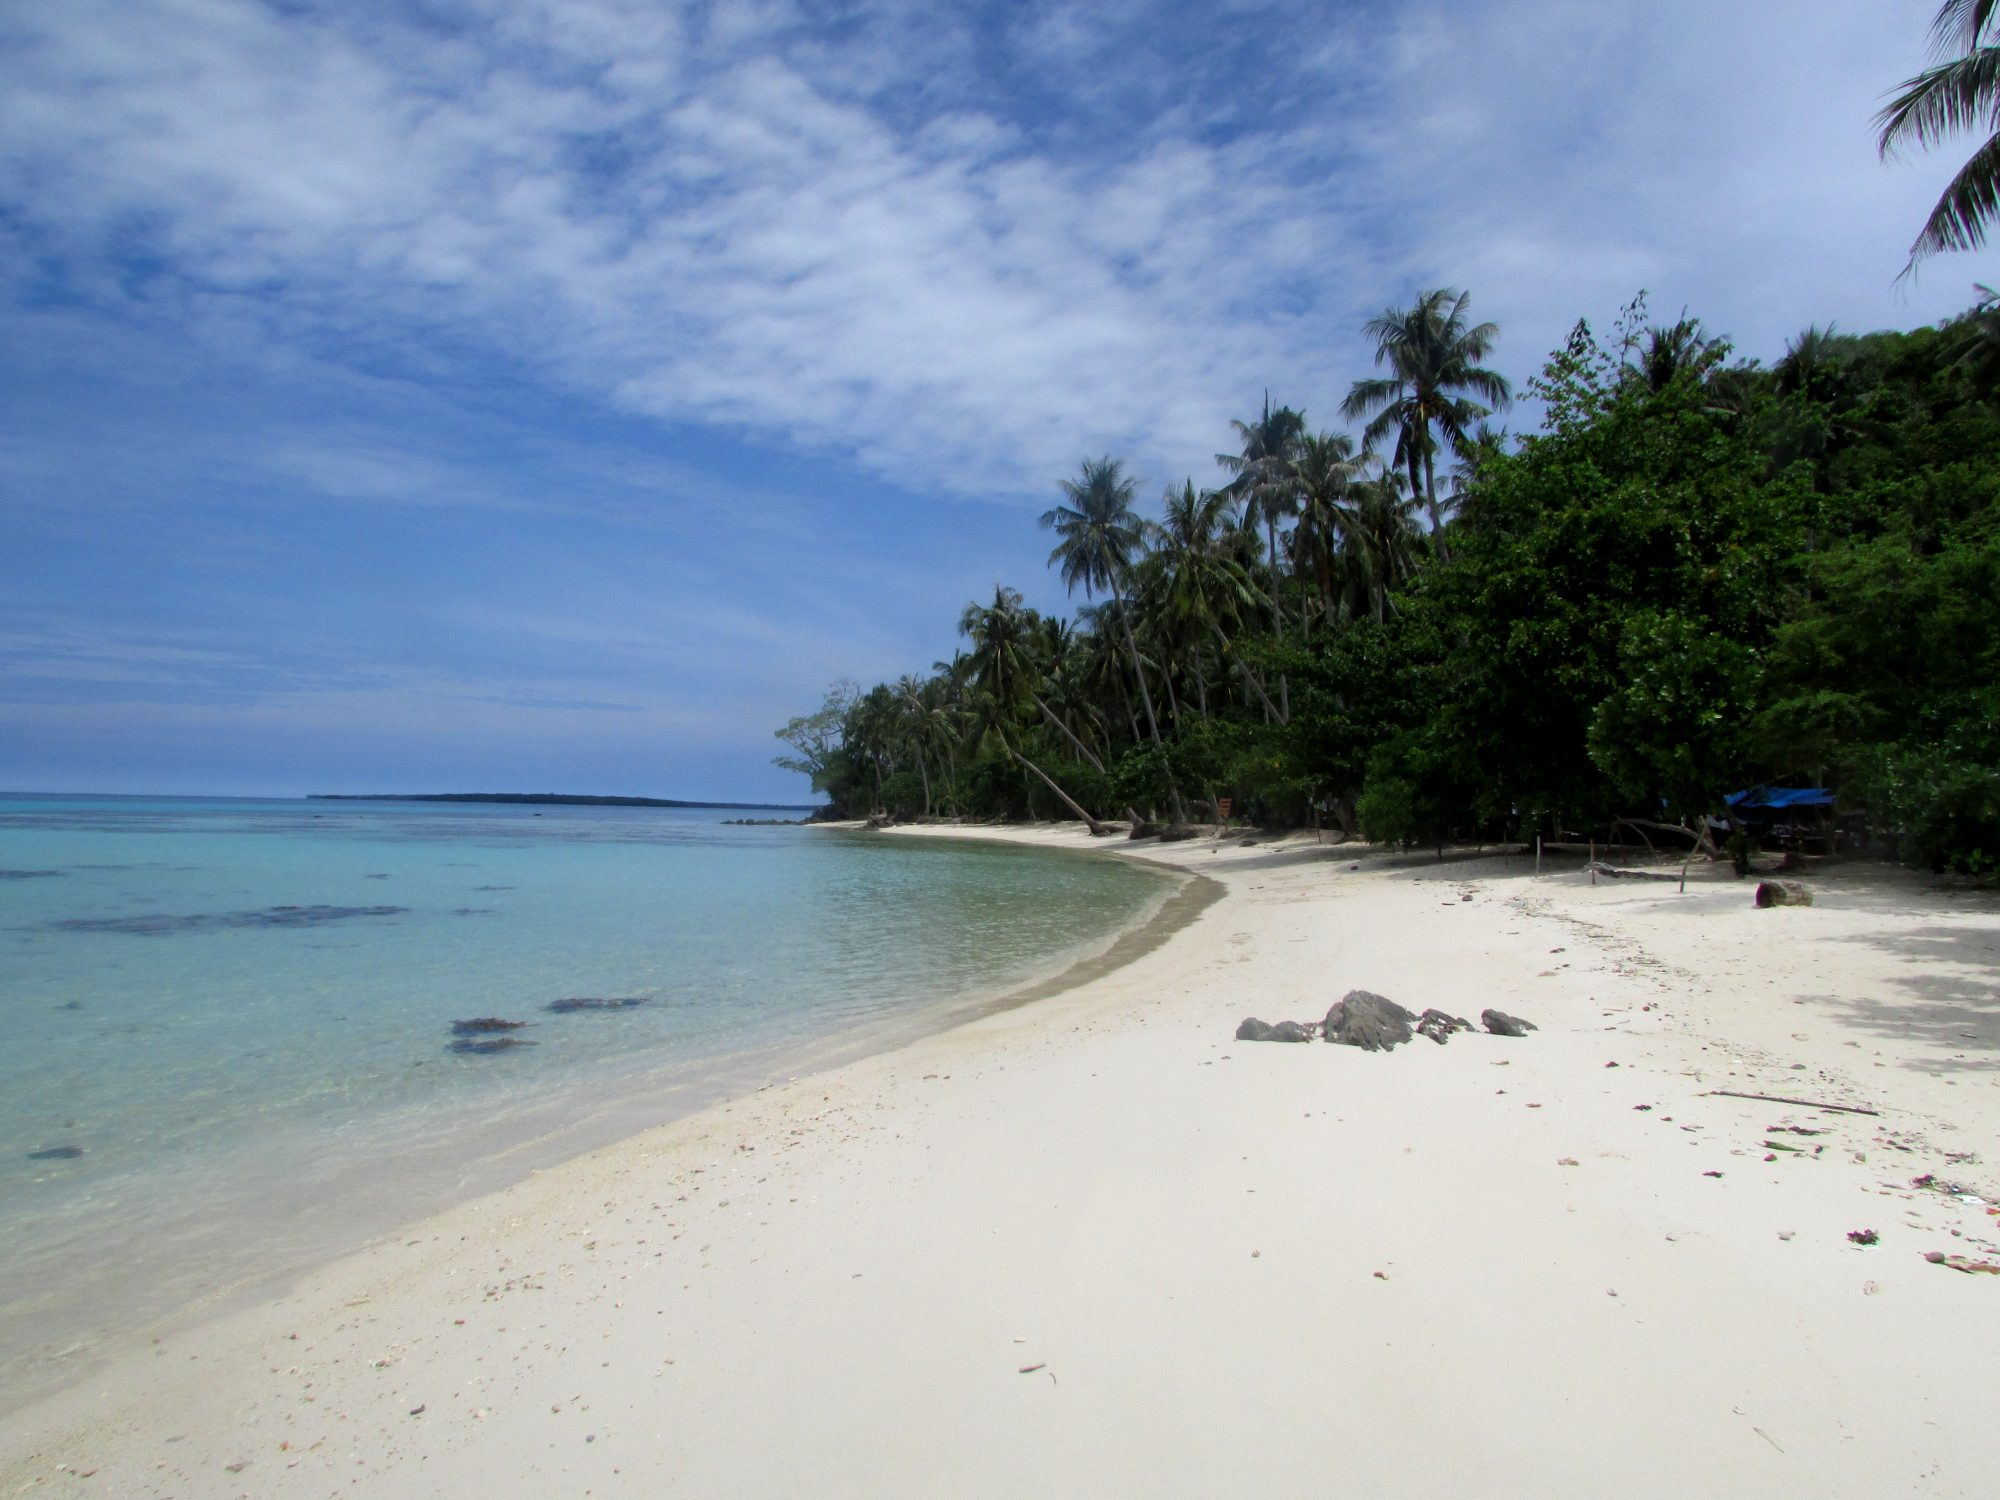 The Amazing Karimunjawa Islands In Indonesia Please Visit Them Now